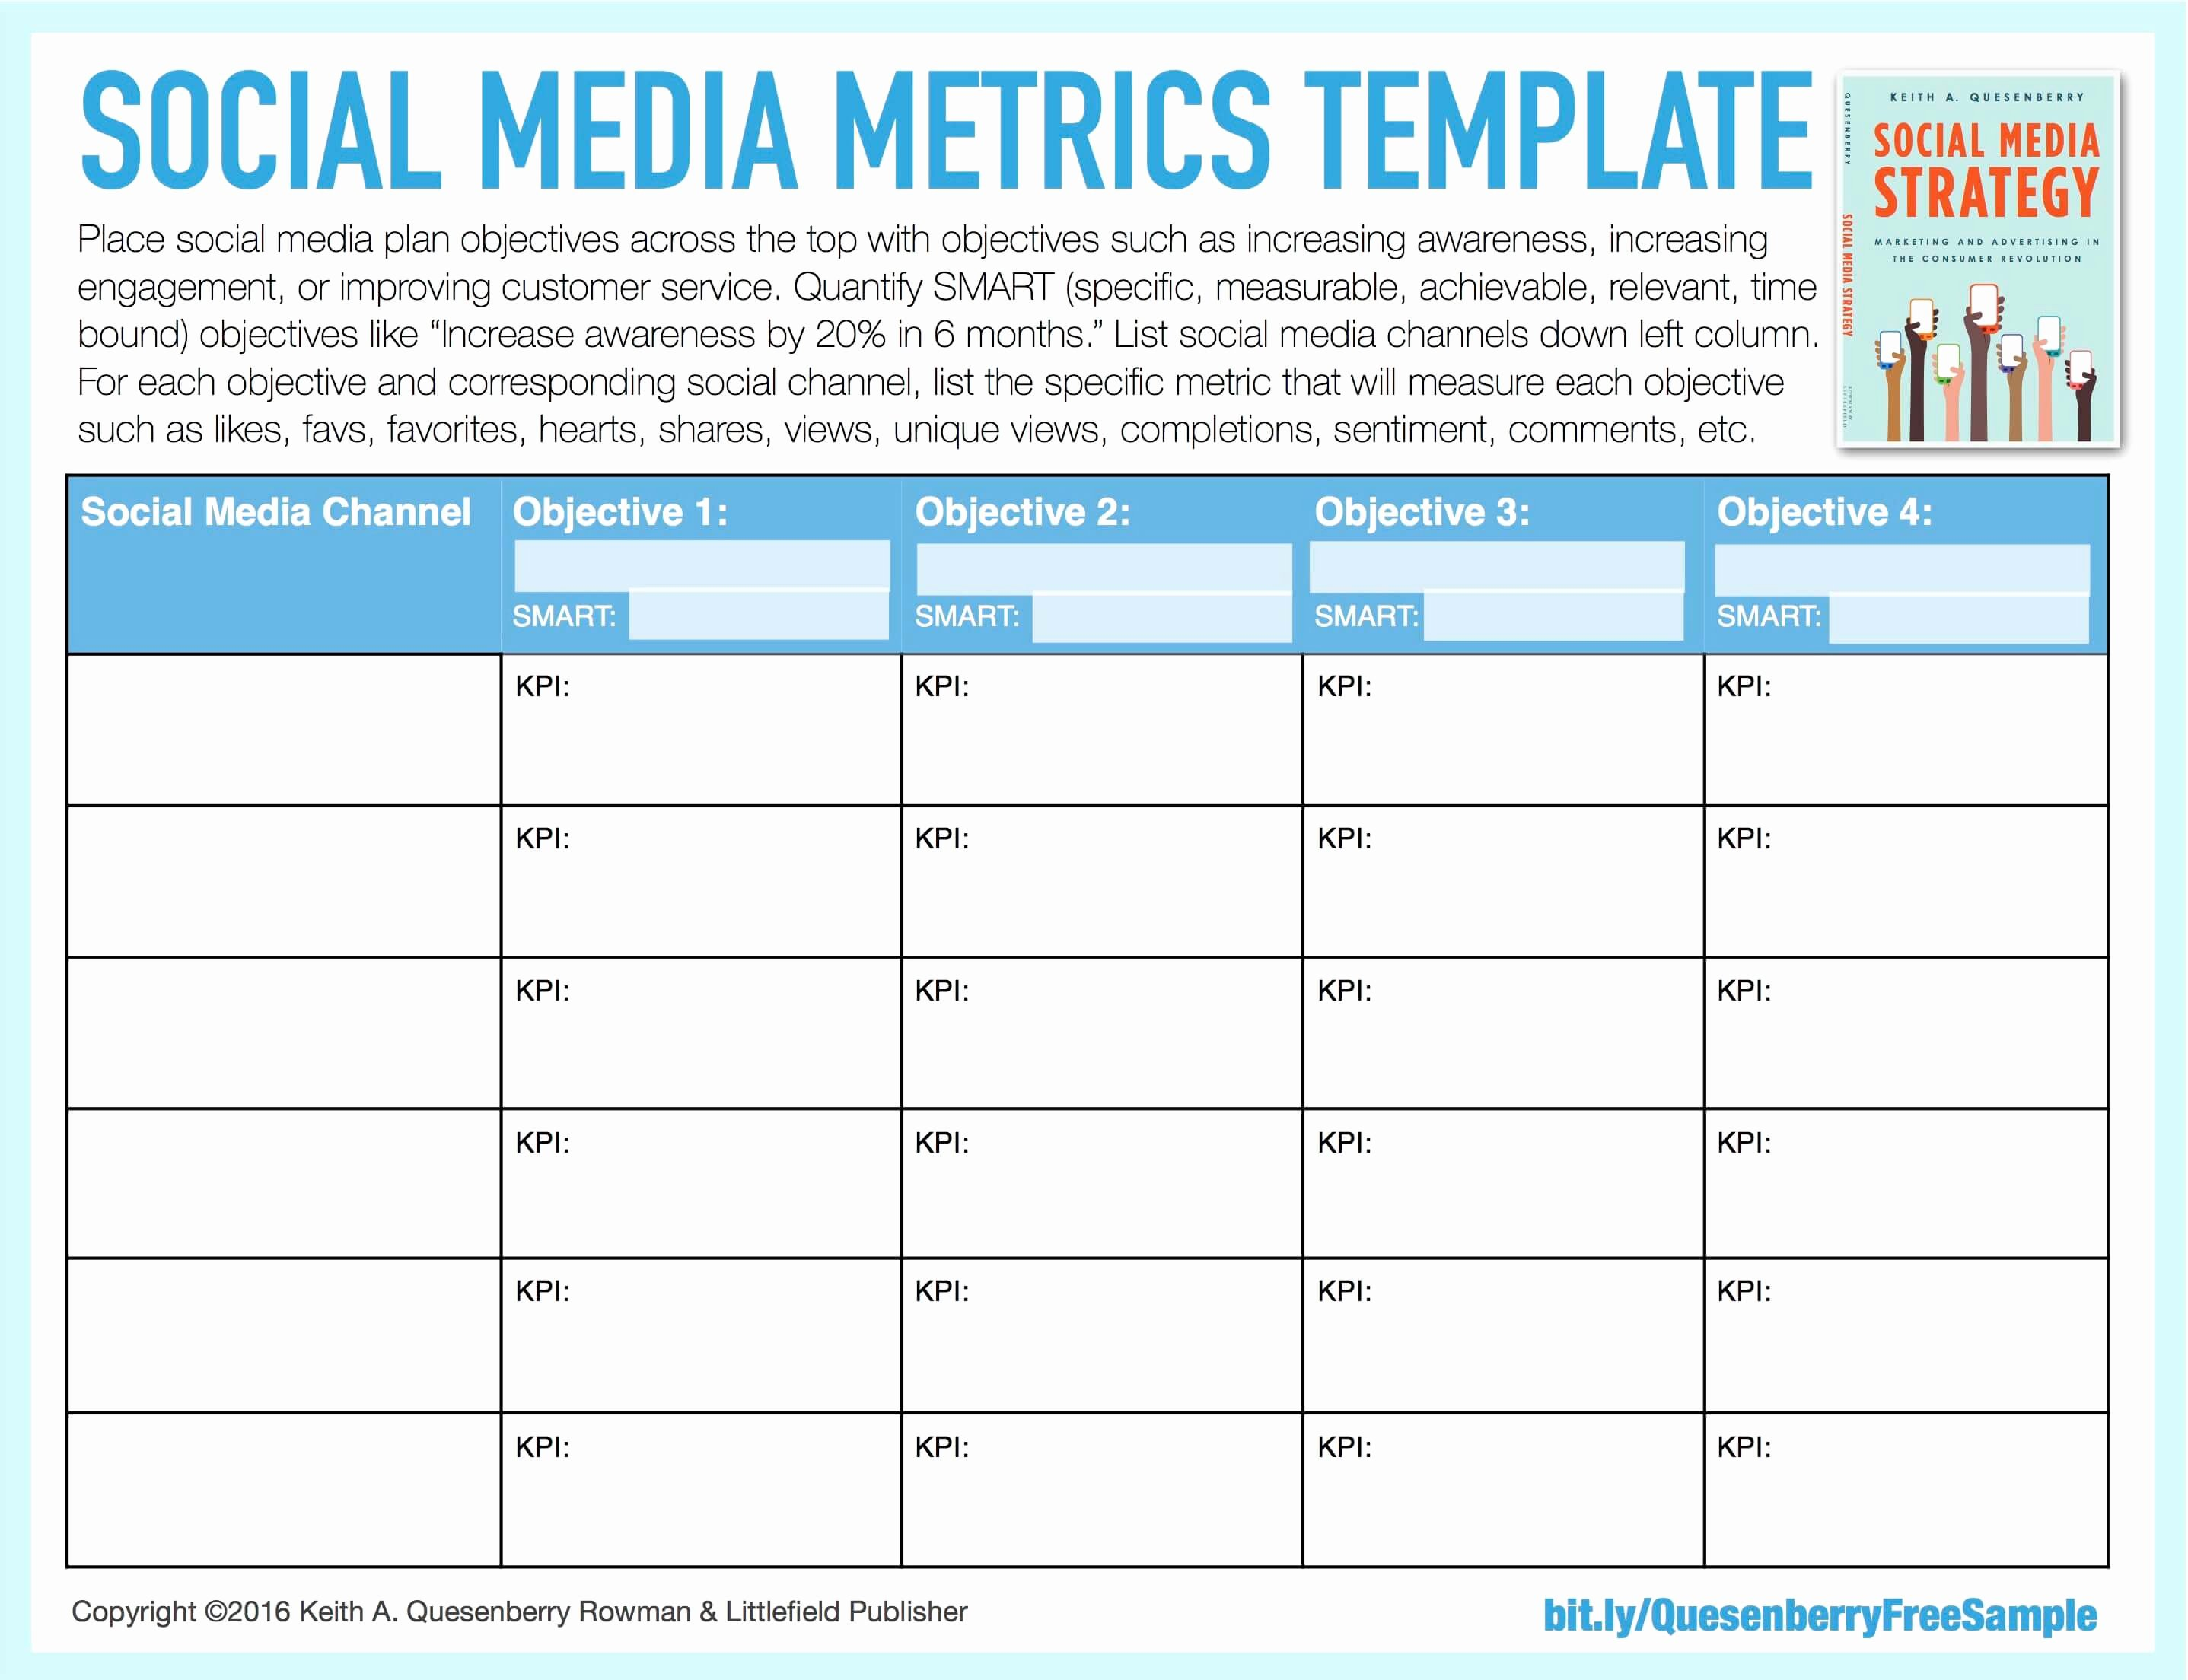 Social Media Reports Template New social Media Templates Keith A Quesenberry